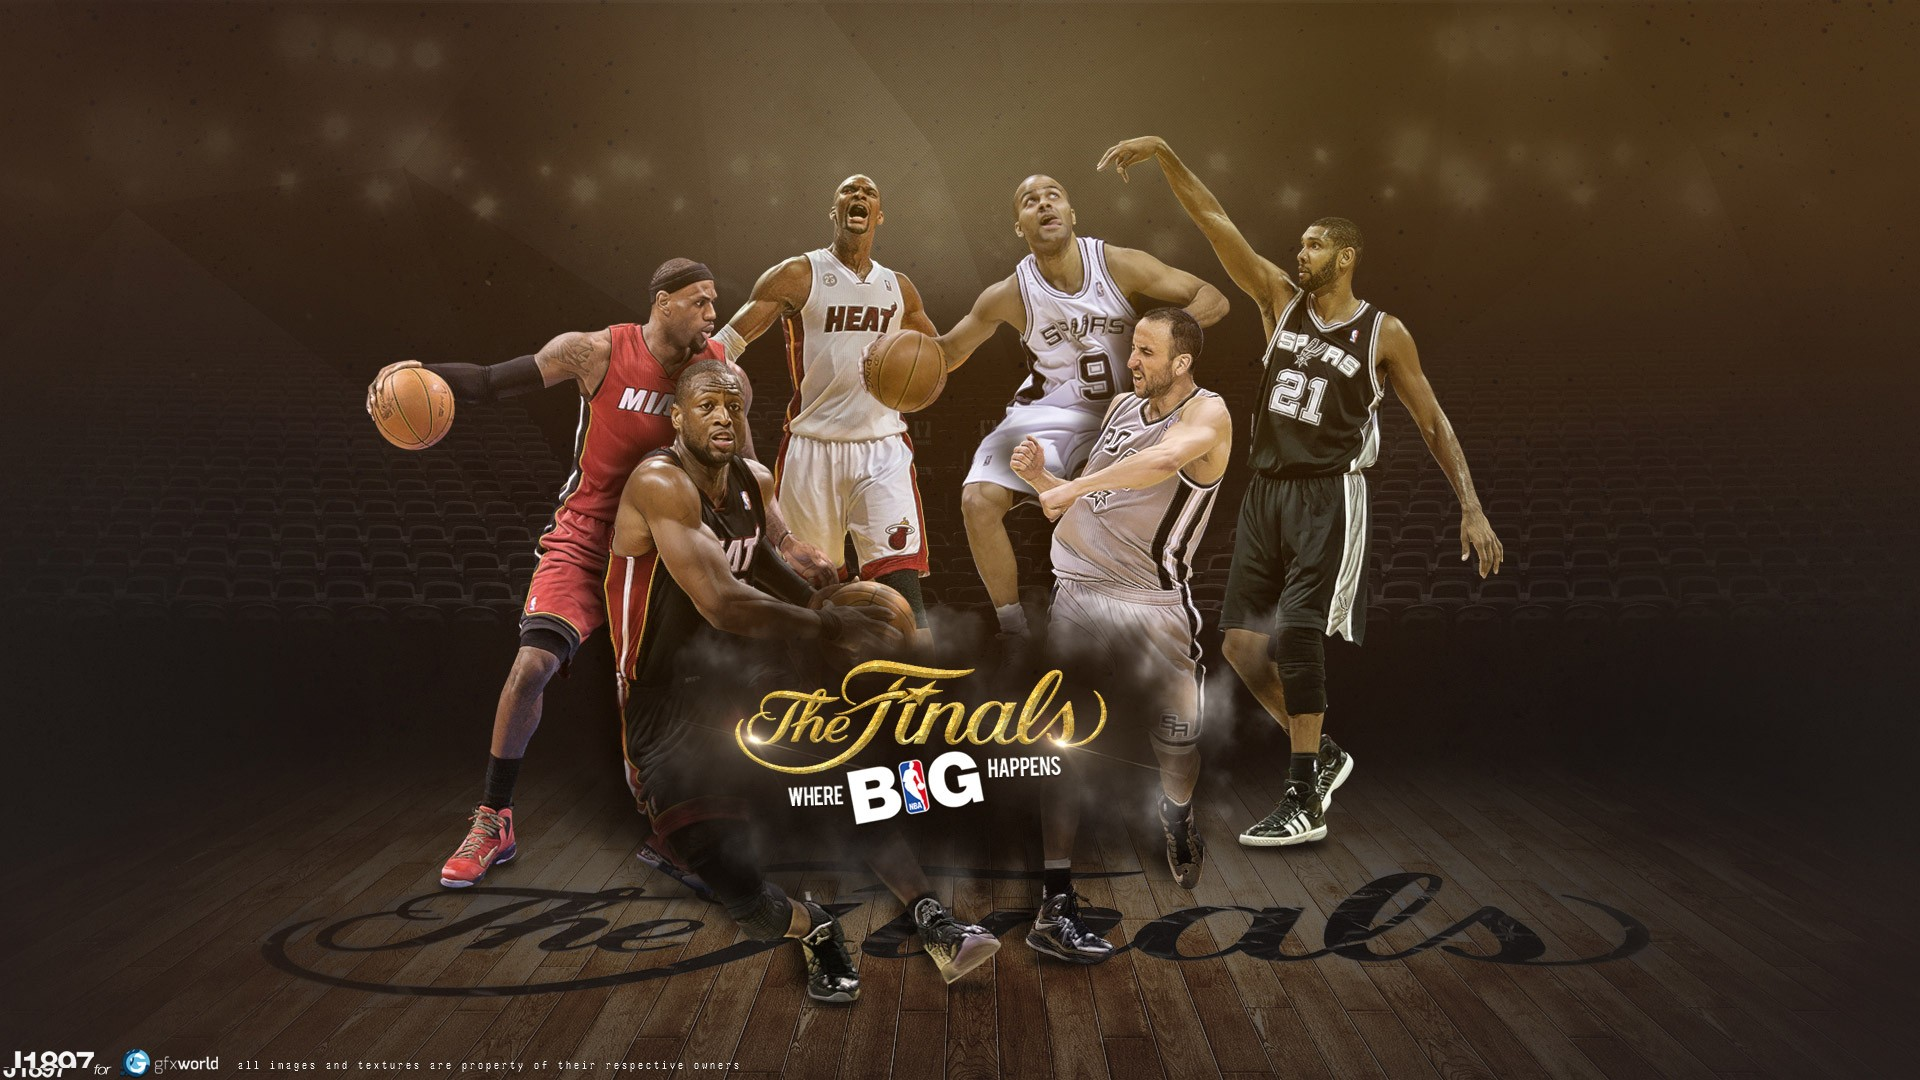 Dope Nba Background For Pc: 50+ Nba Wallpapers ·① Download Free HD Backgrounds For